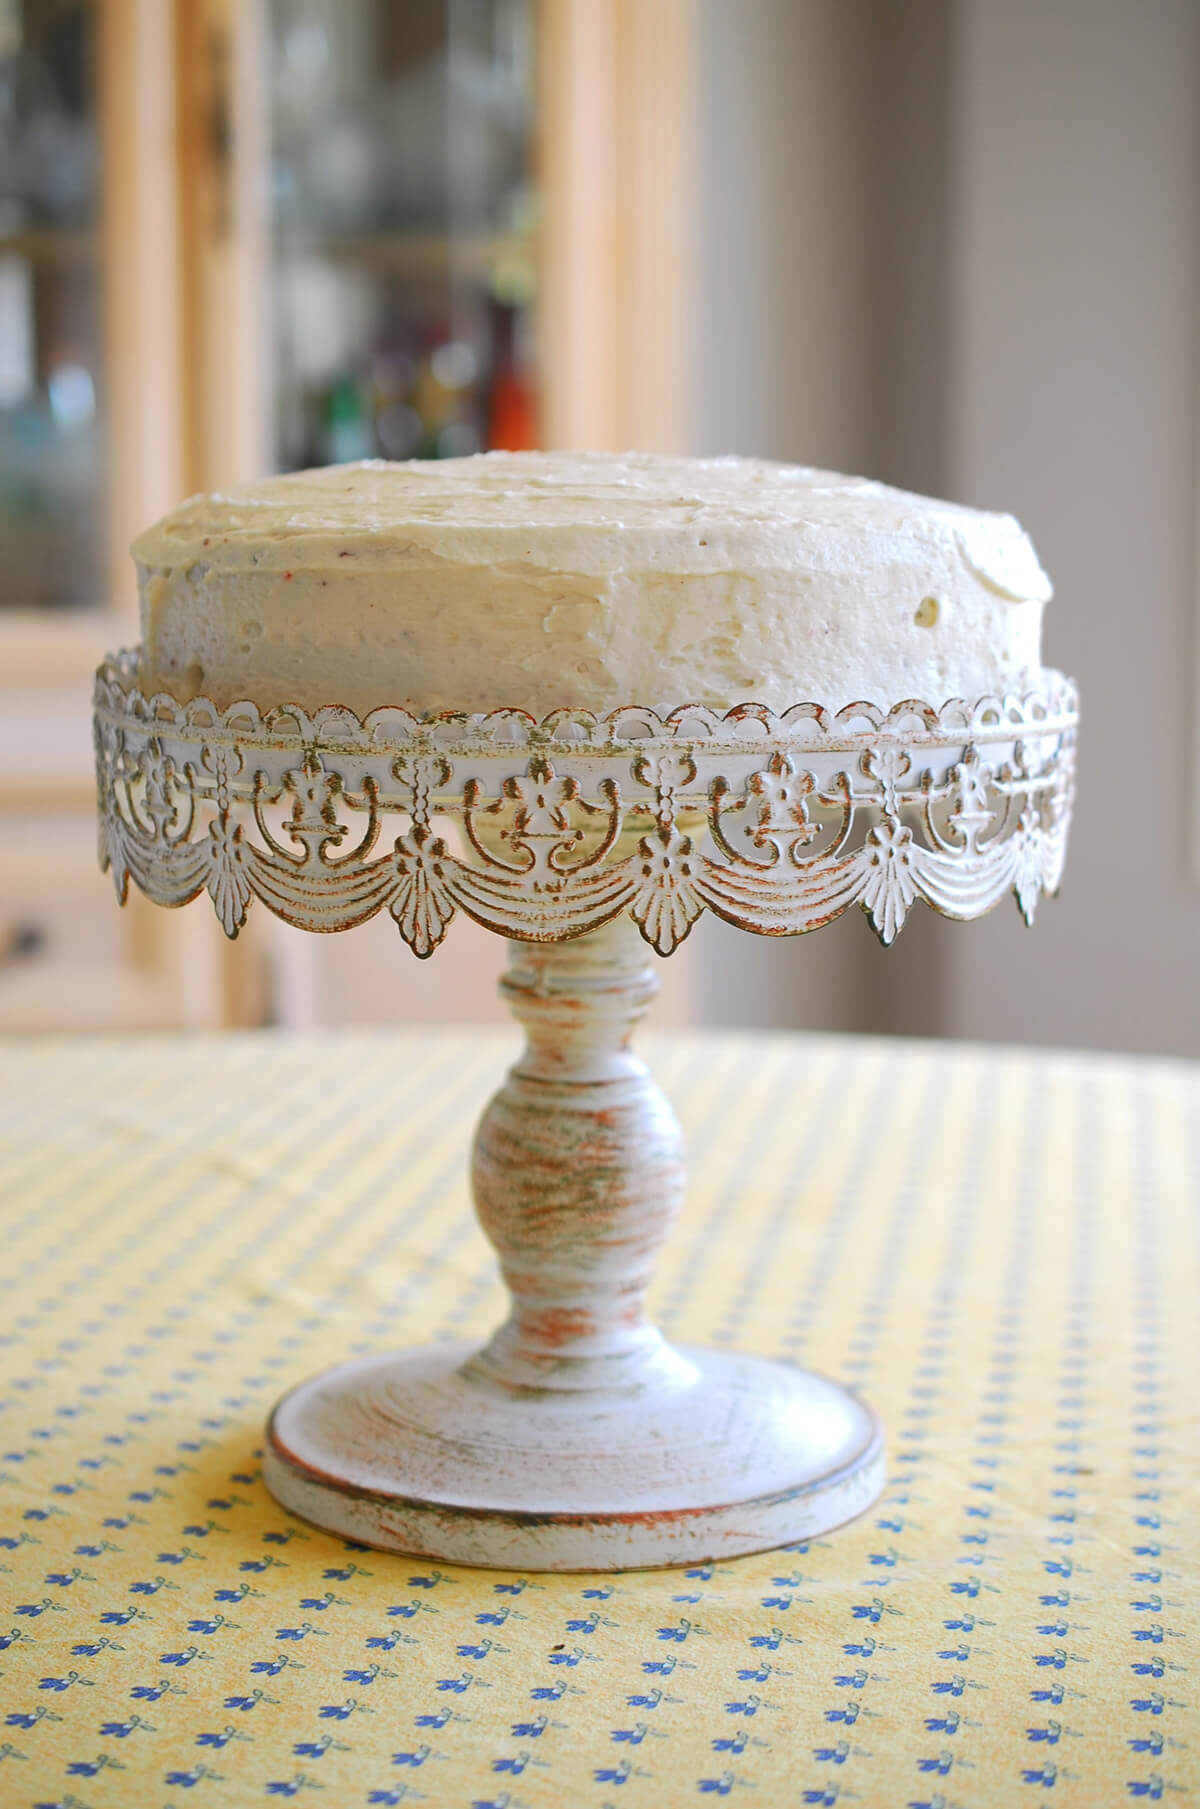 pedestal diy dress my favorite dome stands one cake of mini to up ways with a table